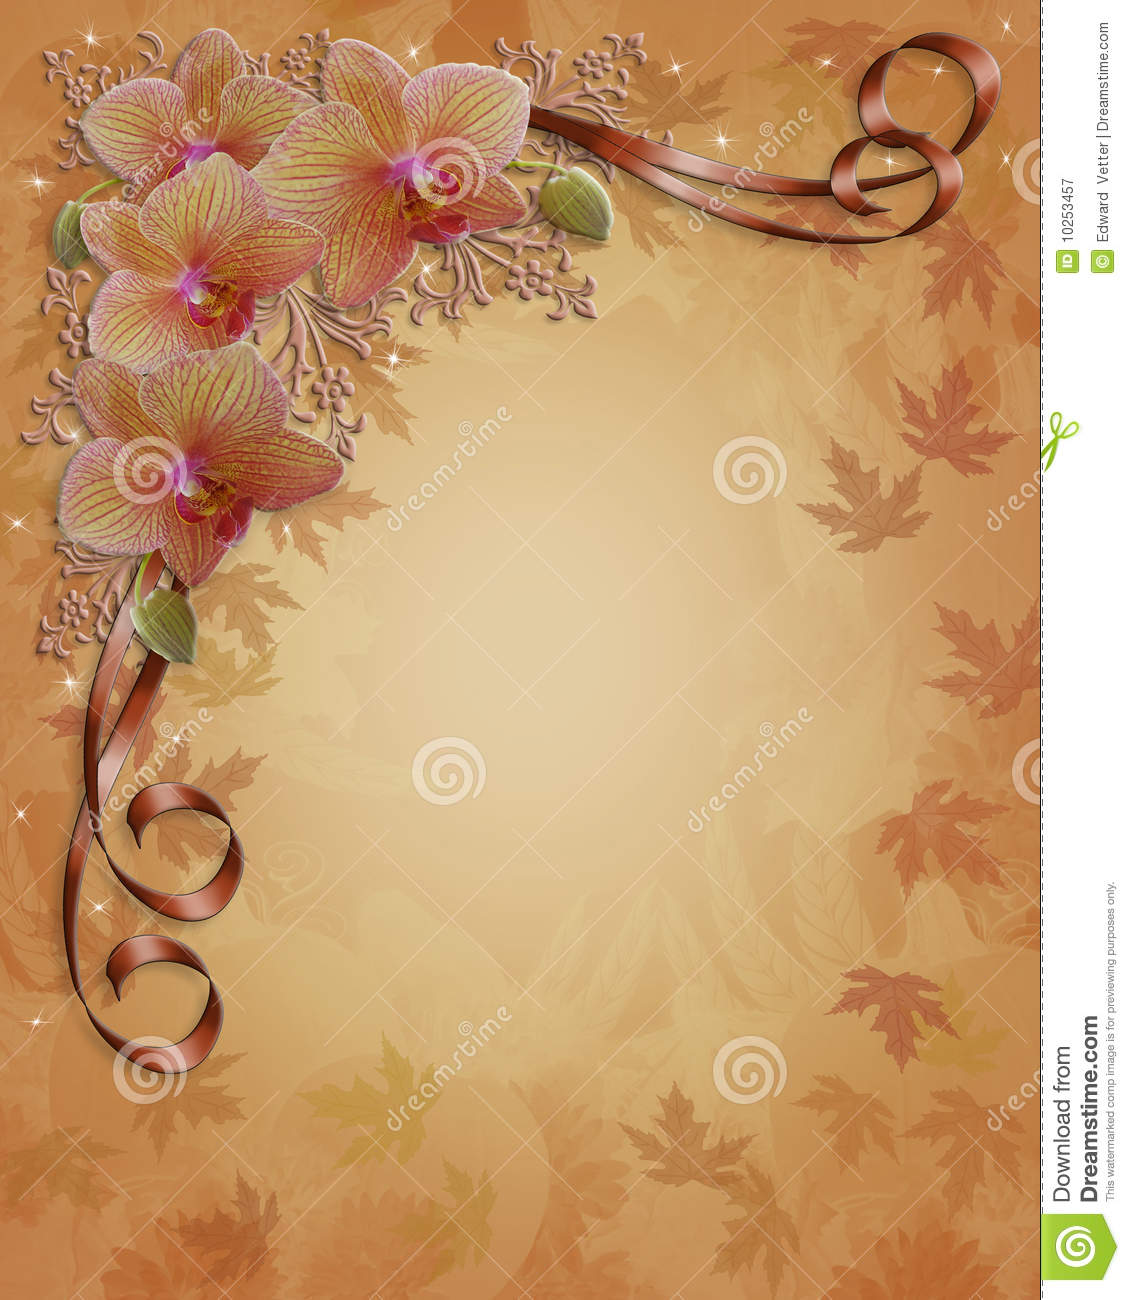 ... wedding invitation border, Thanksgiving or Autumn template with leaves